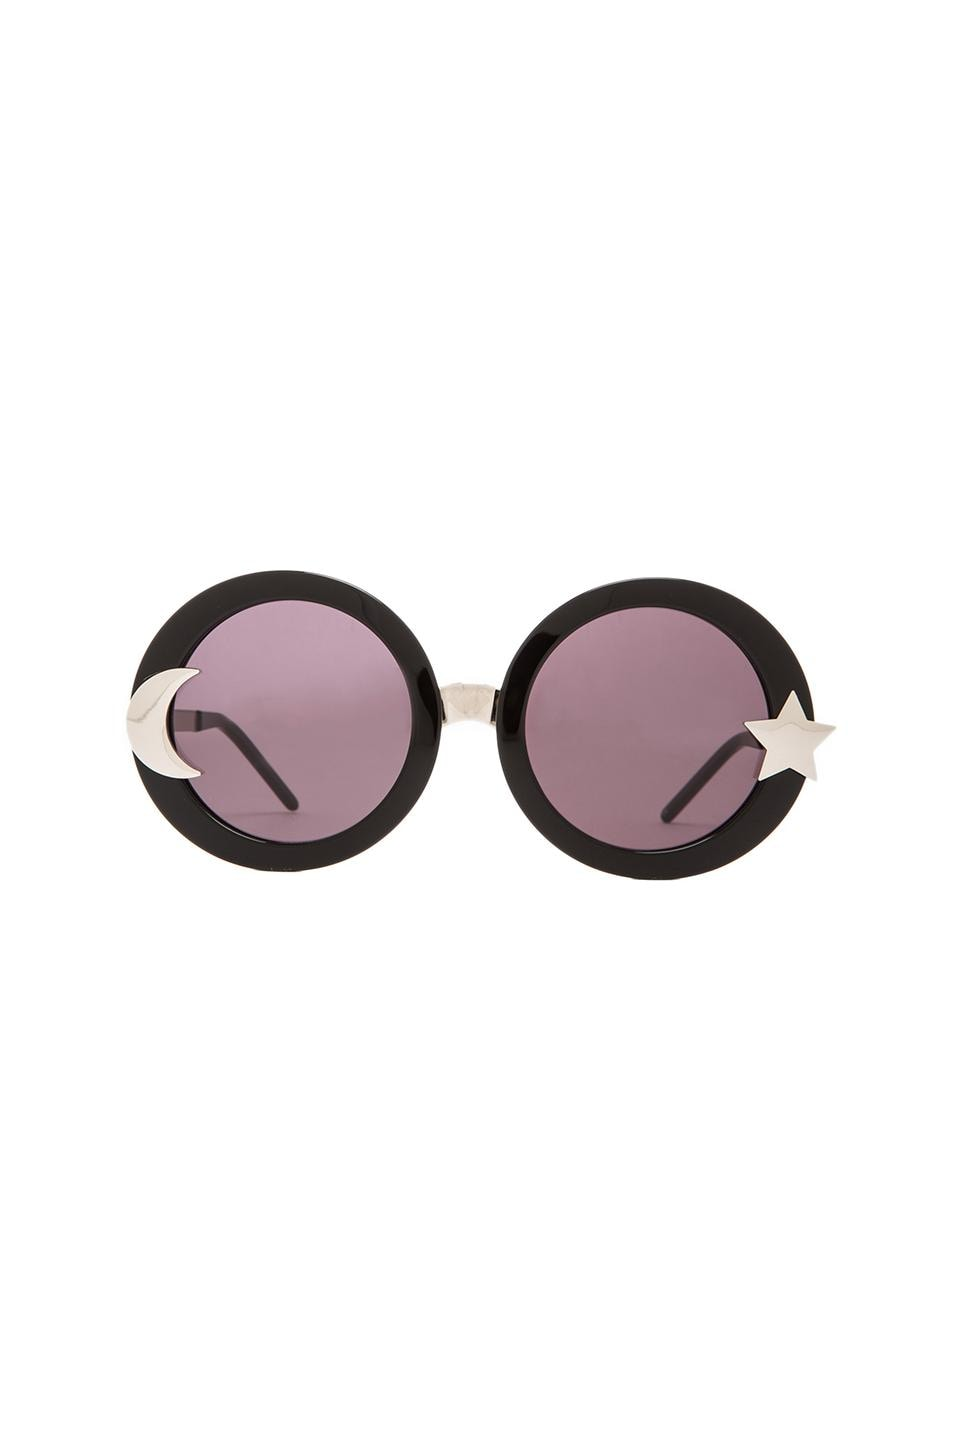 Wildfox Couture Luna Sunglasses in Black